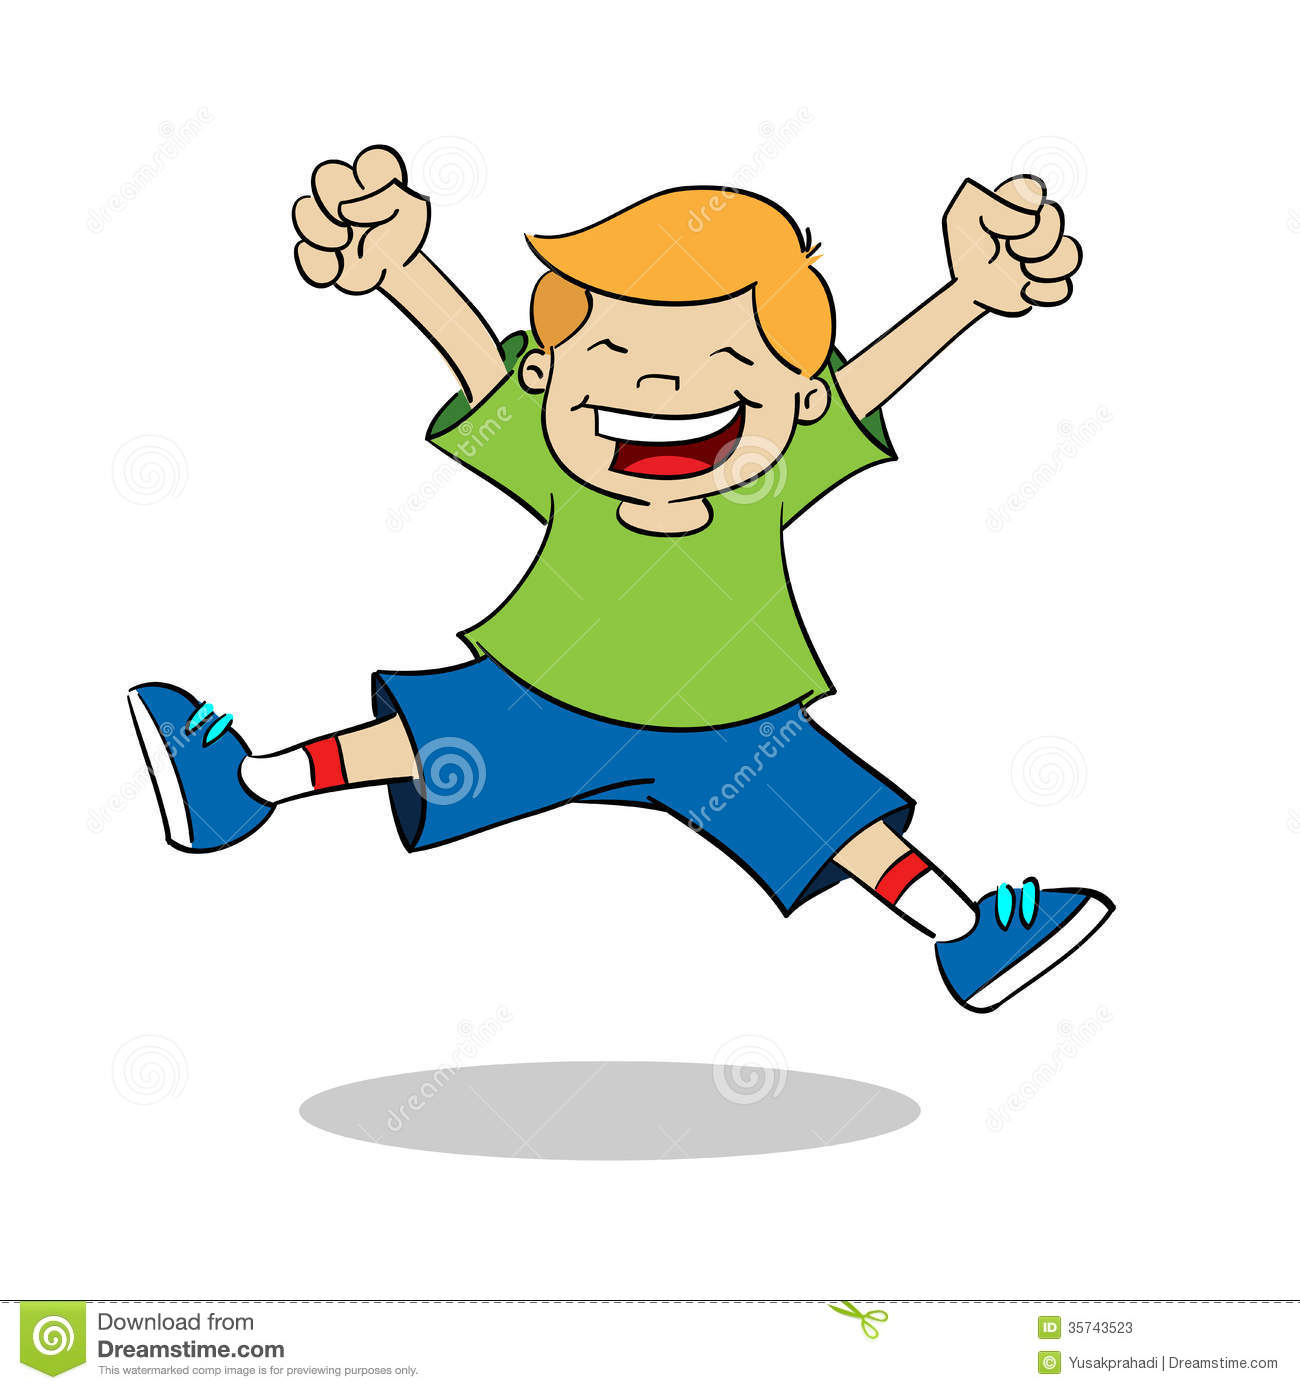 Clipart Jumpingjumpingrope Clipartbungeejumping Clipart